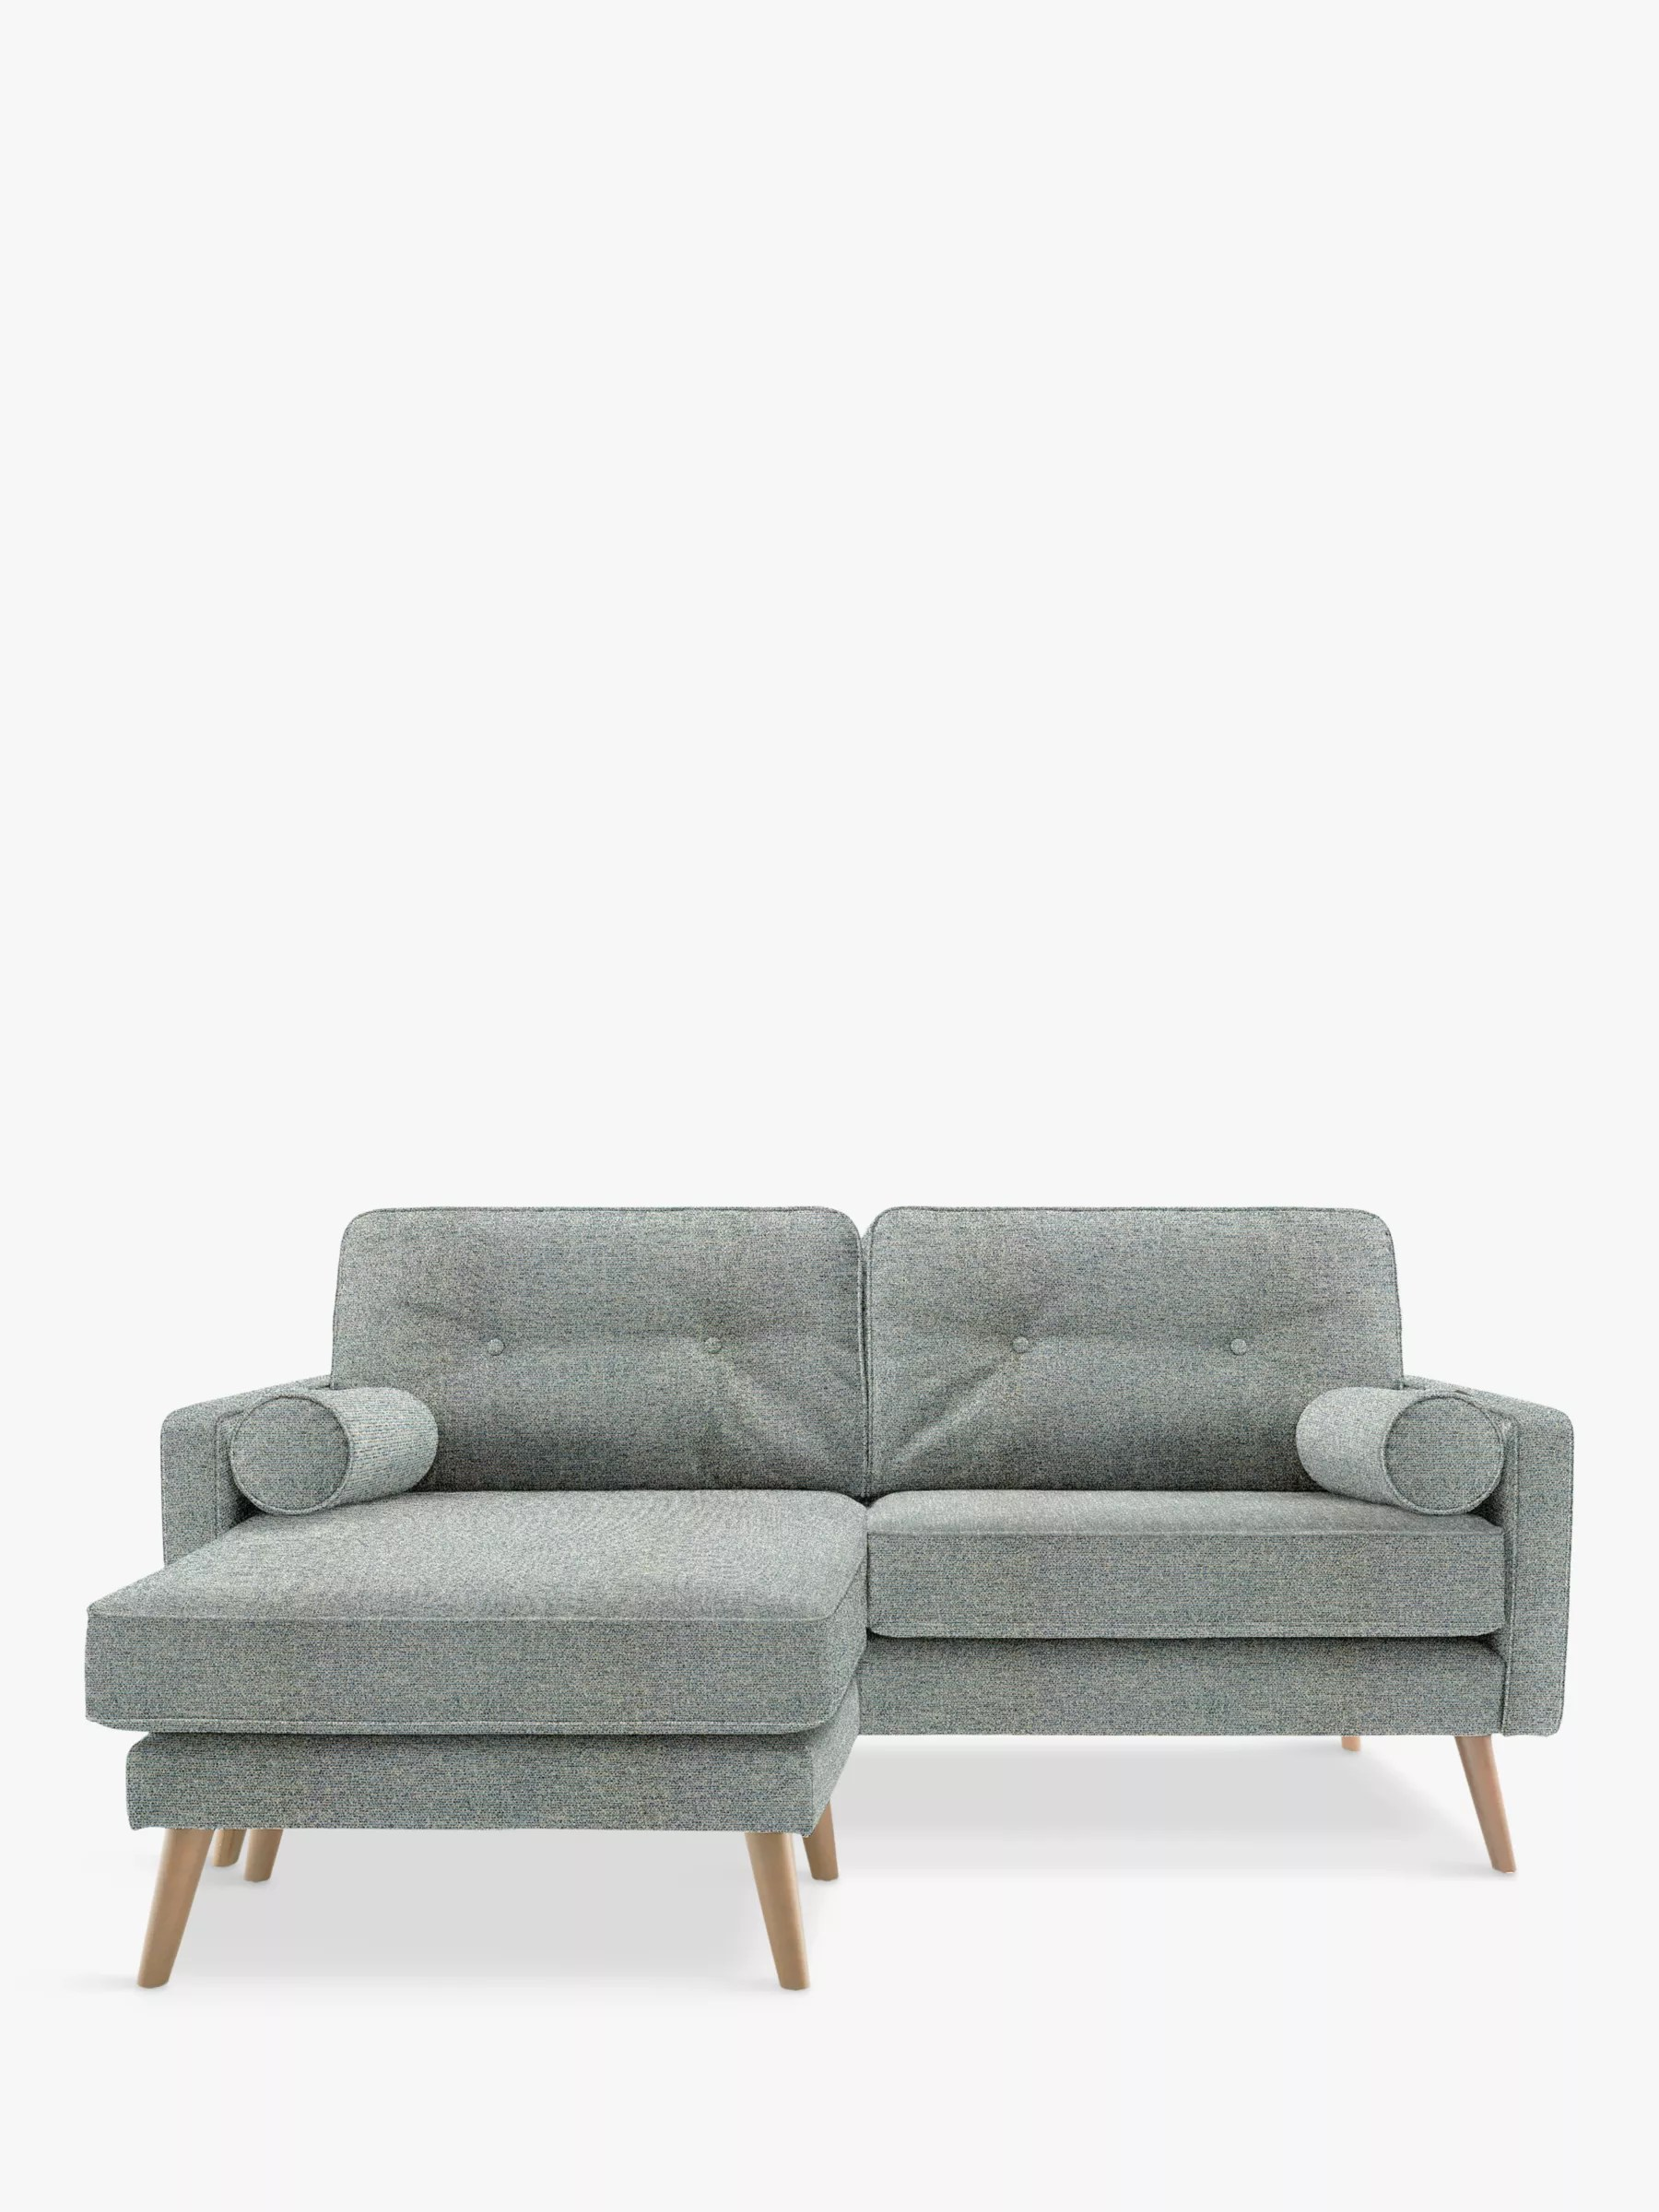 G Plan Vintage The Sixty Five Medium 2 Seater Chaise End Sofa Etch Ink At John Lewis Partners